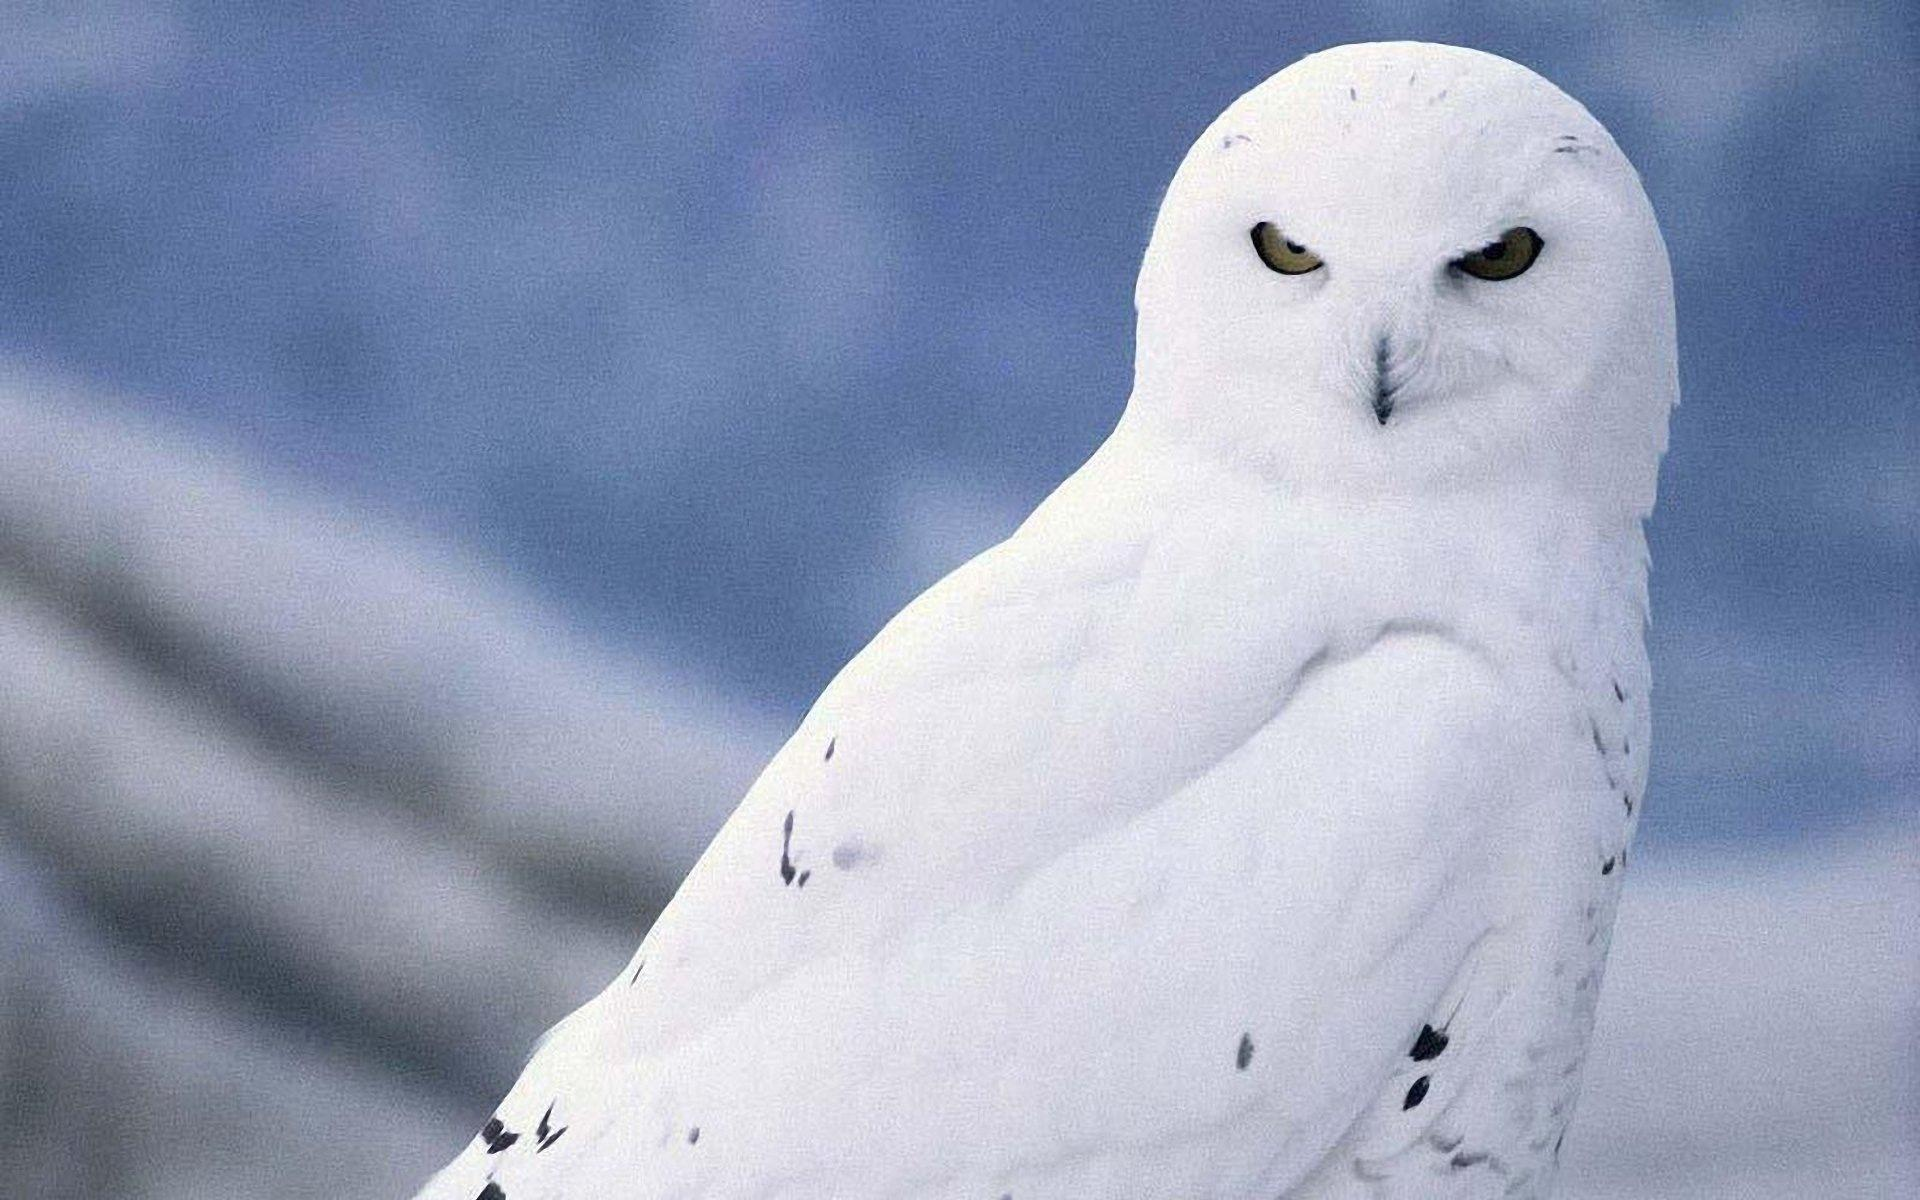 Snowy Owl Wallpaper #6933230